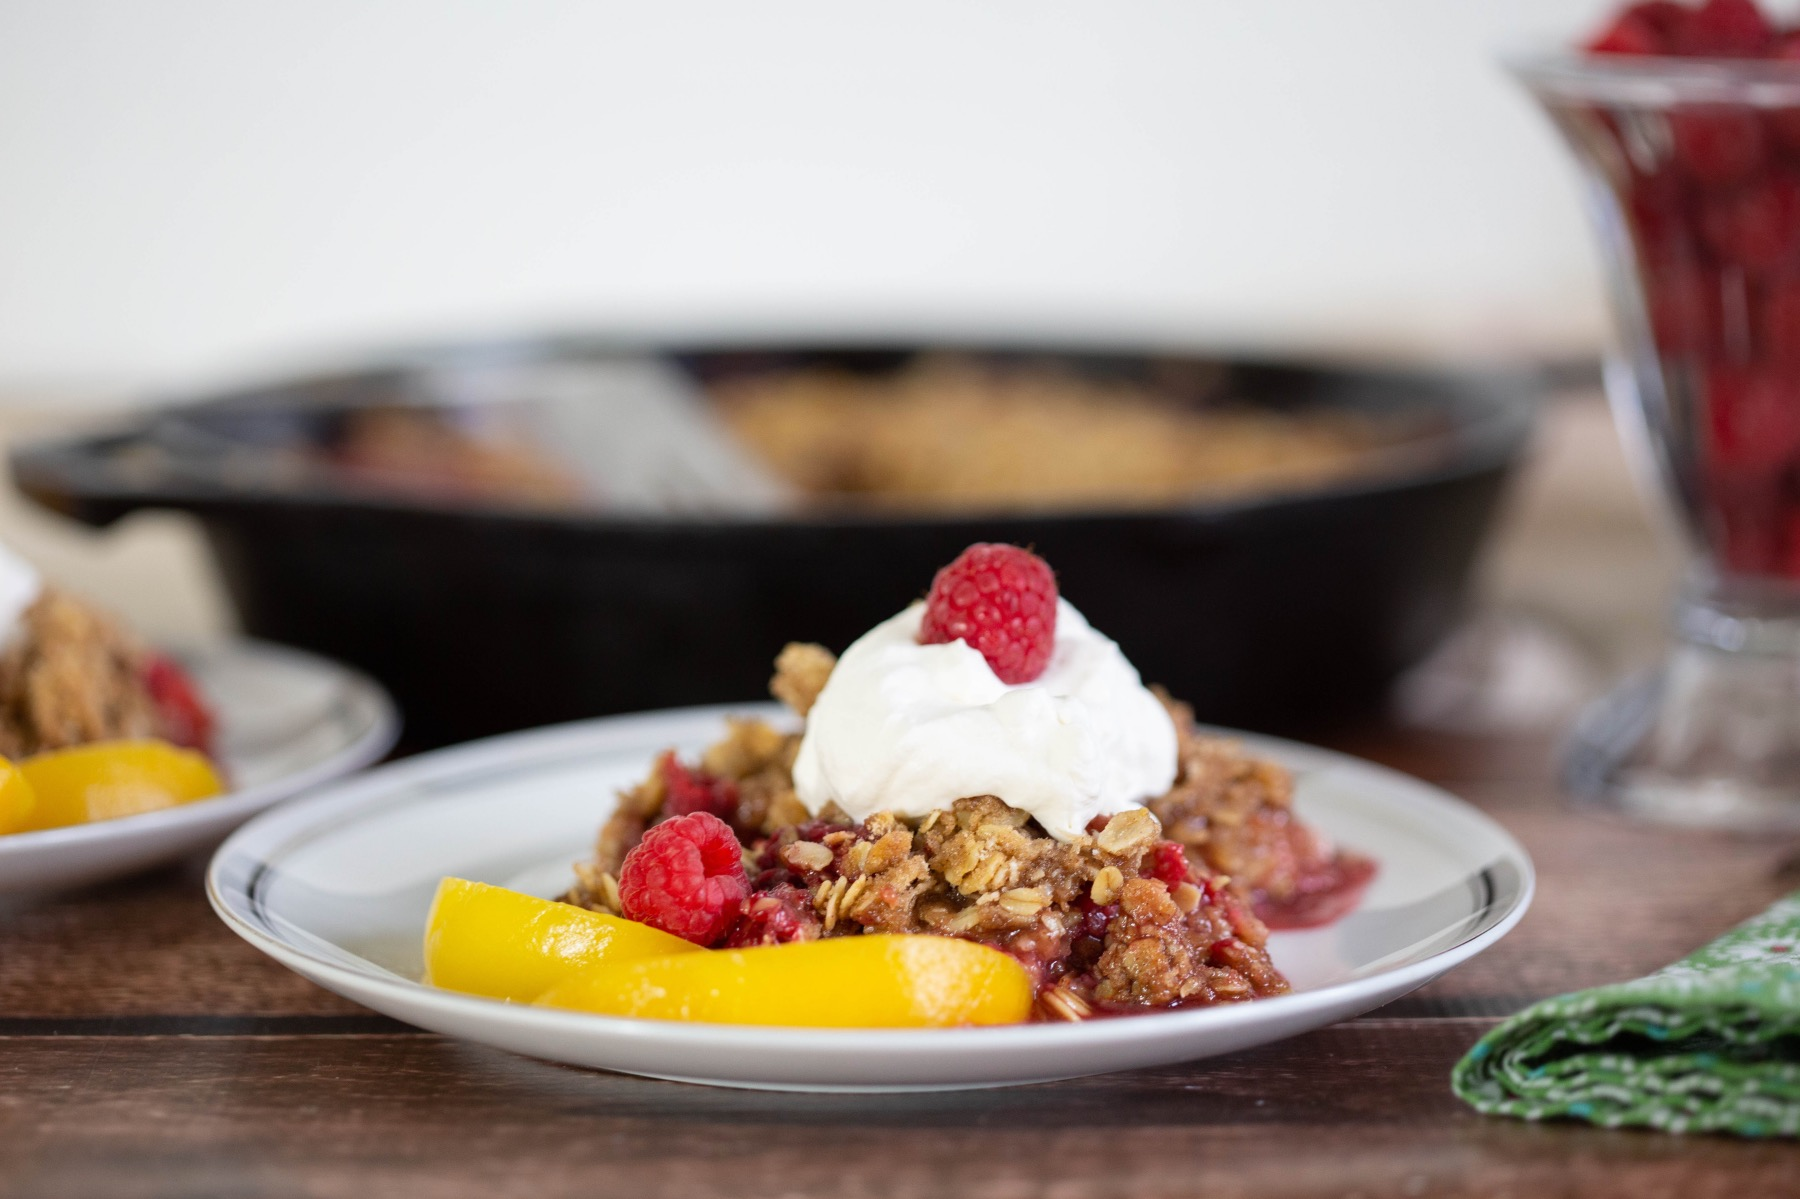 homemade cast iron skillet crumble with peaches